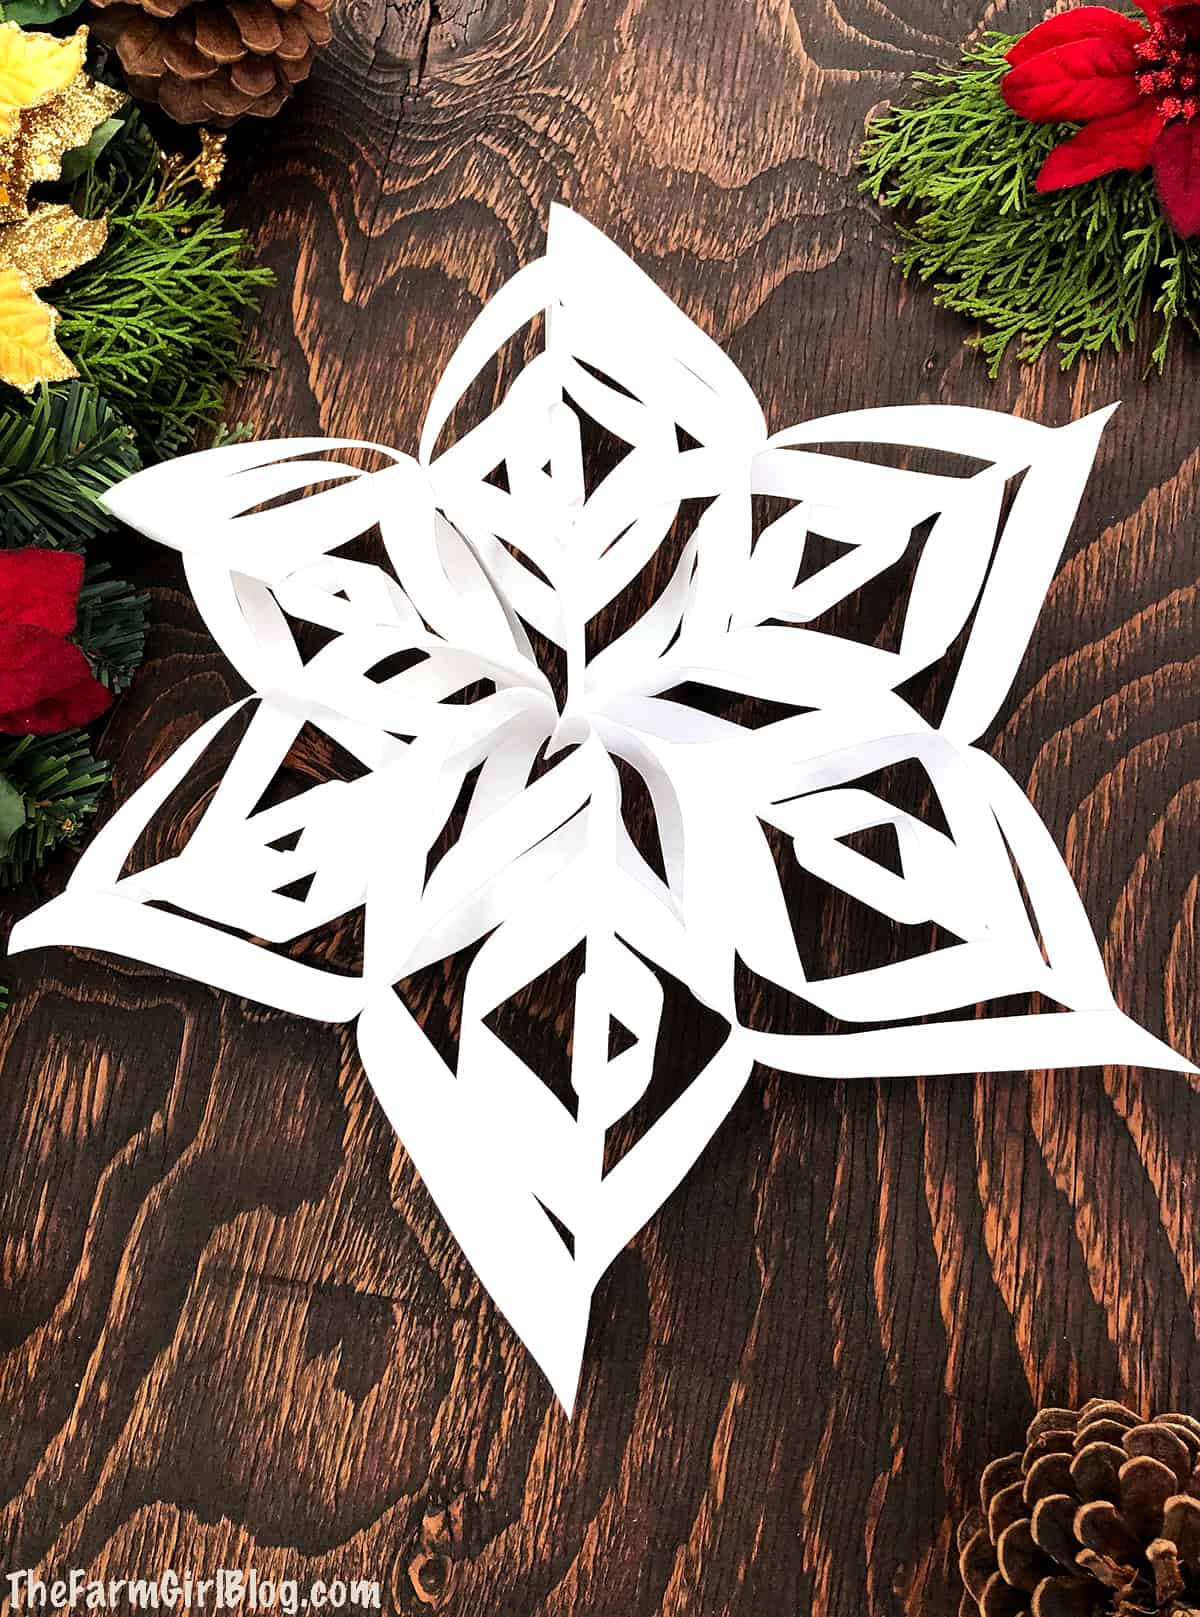 Kids' Christmas break is just around the corner and I have the perfect project for them to do alone or as a family. These Easy 3D Paper Snowflakes are so much fun to make not only for kids but adults enjoy them as well.